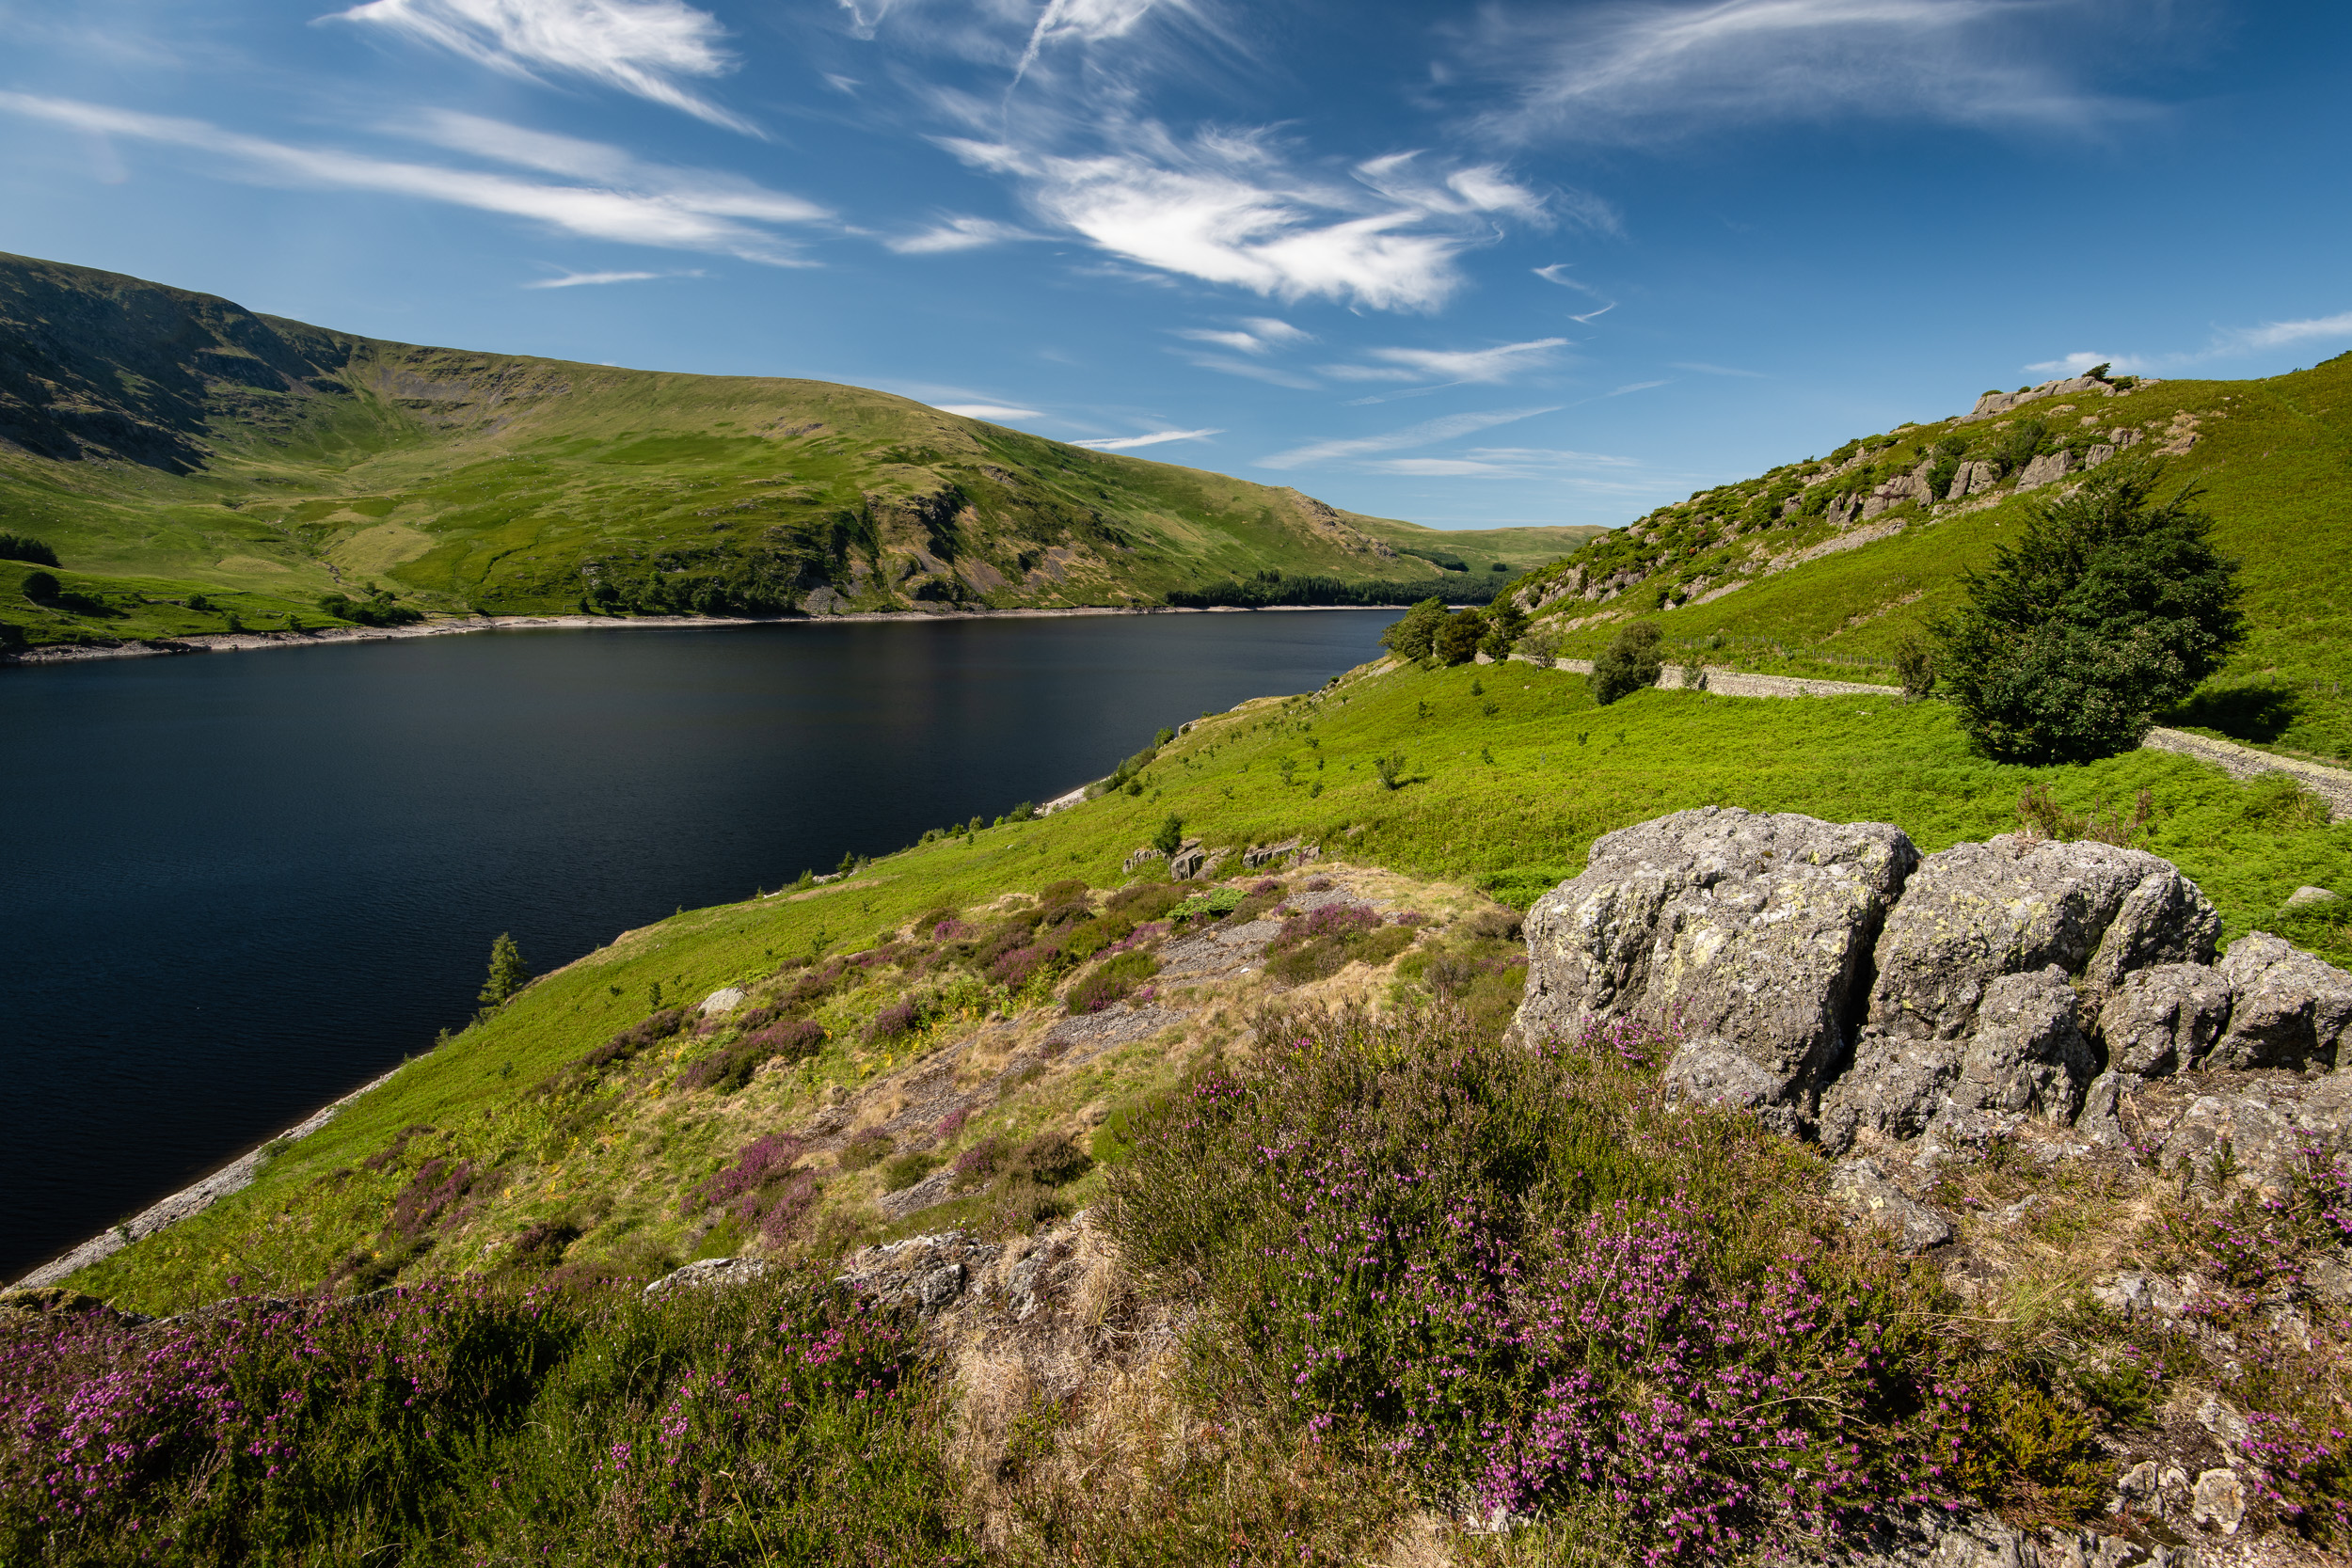 Haweswater Reservoir  - Lake District, England:  Nikon D850, Nikkor 16-35 mm f/4 at 17 mm, 1/20th sec at ISO 64, f/13, Lee Filters Circular Polariser.